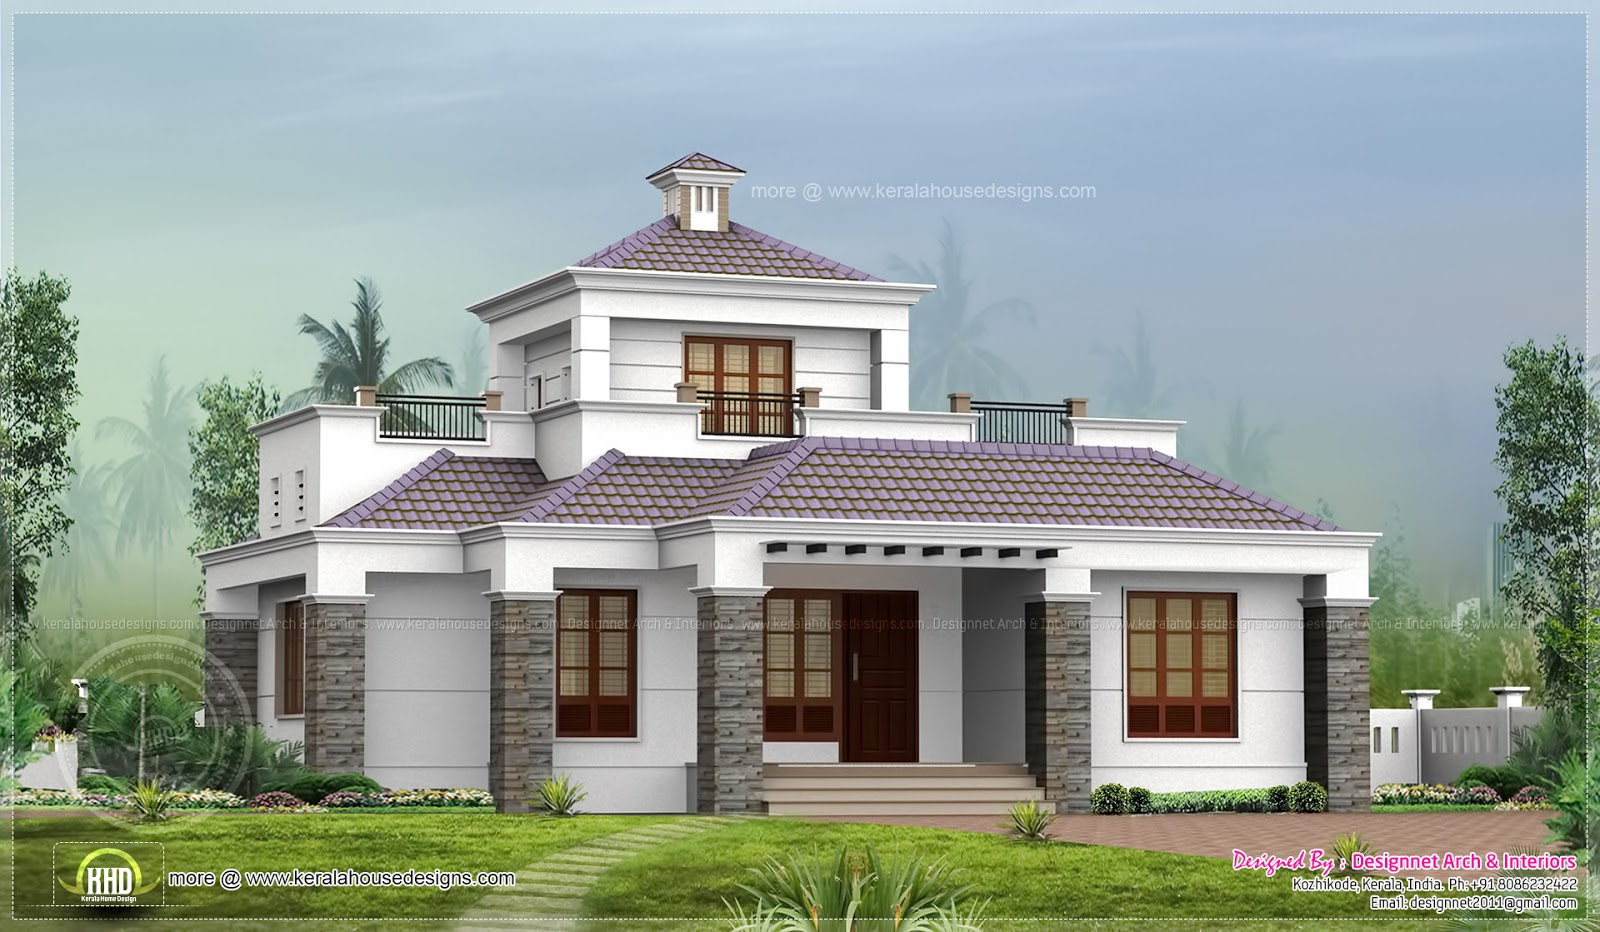 2 Story Modern House Designs Single House Design, 1500 Sq